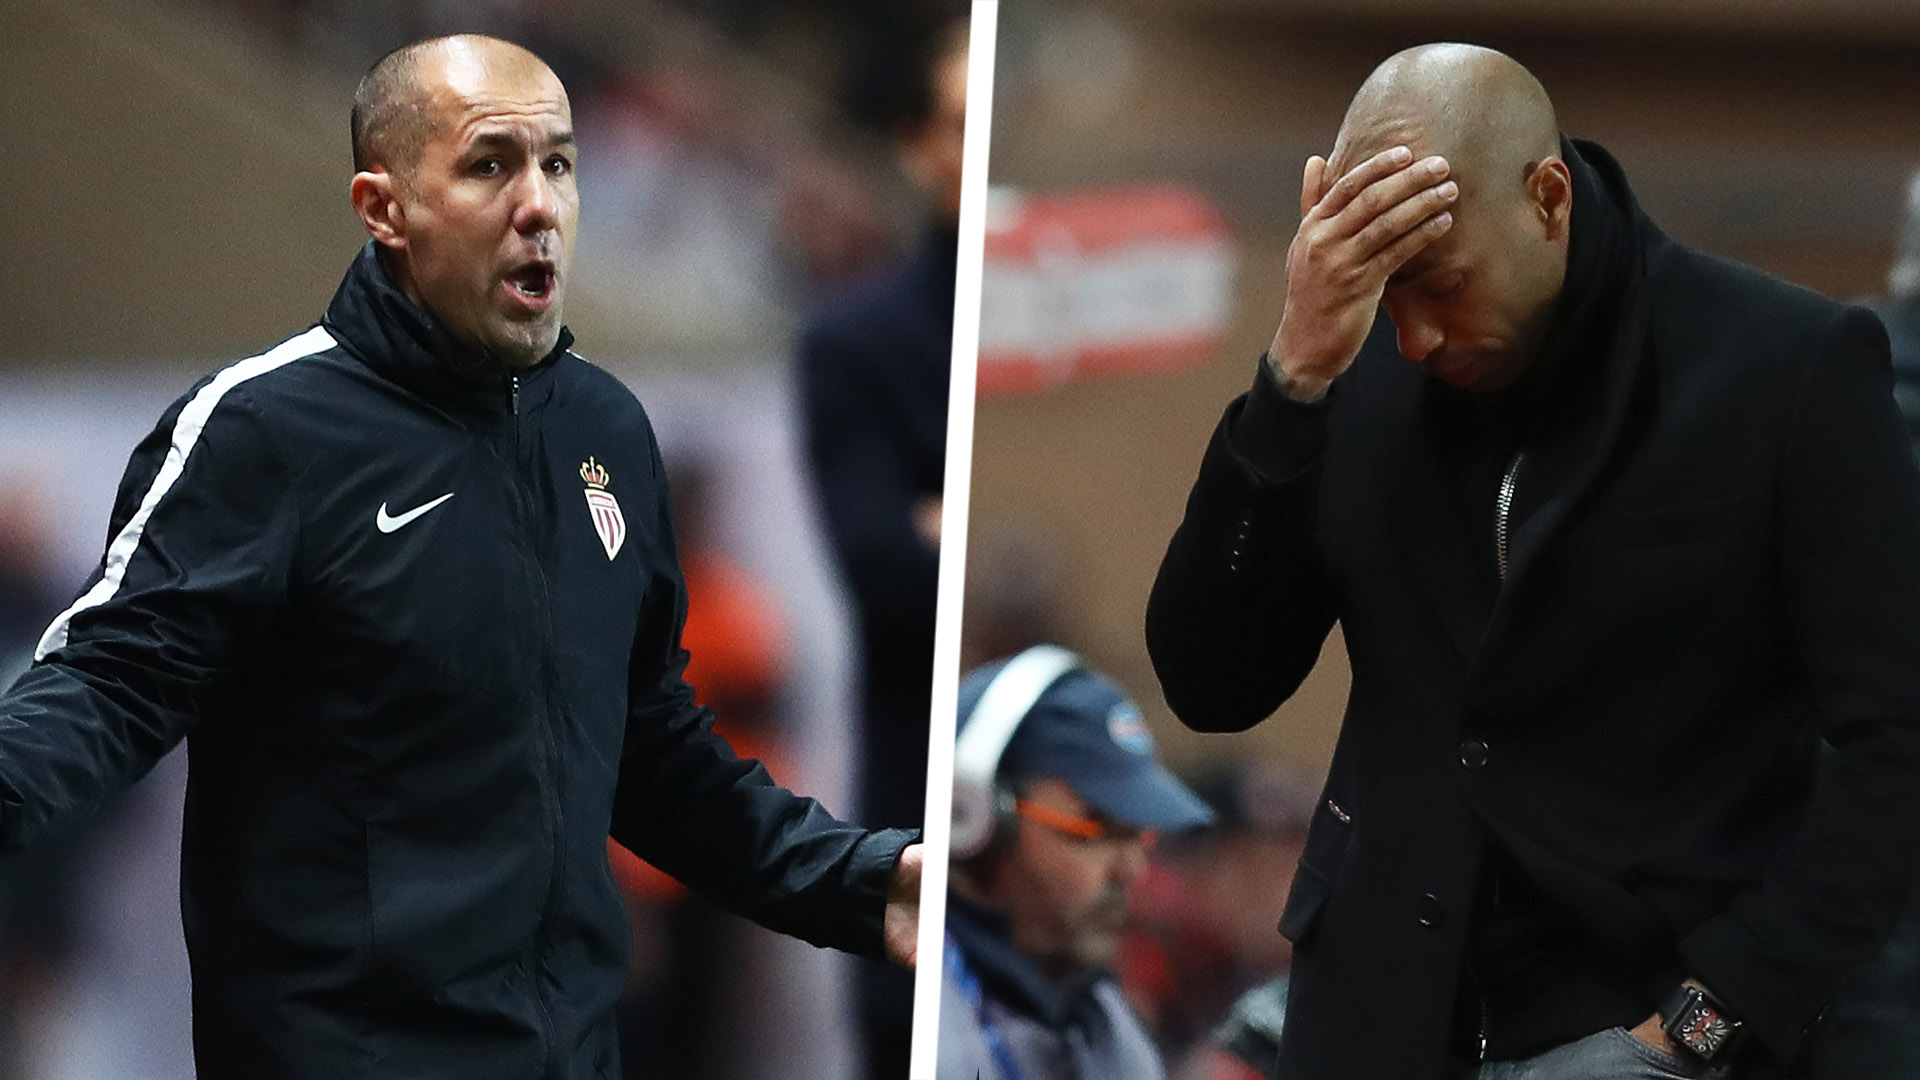 AS Monaco Confirm Leonardo Jardim's Return to Replace Sacked Thierry Henry